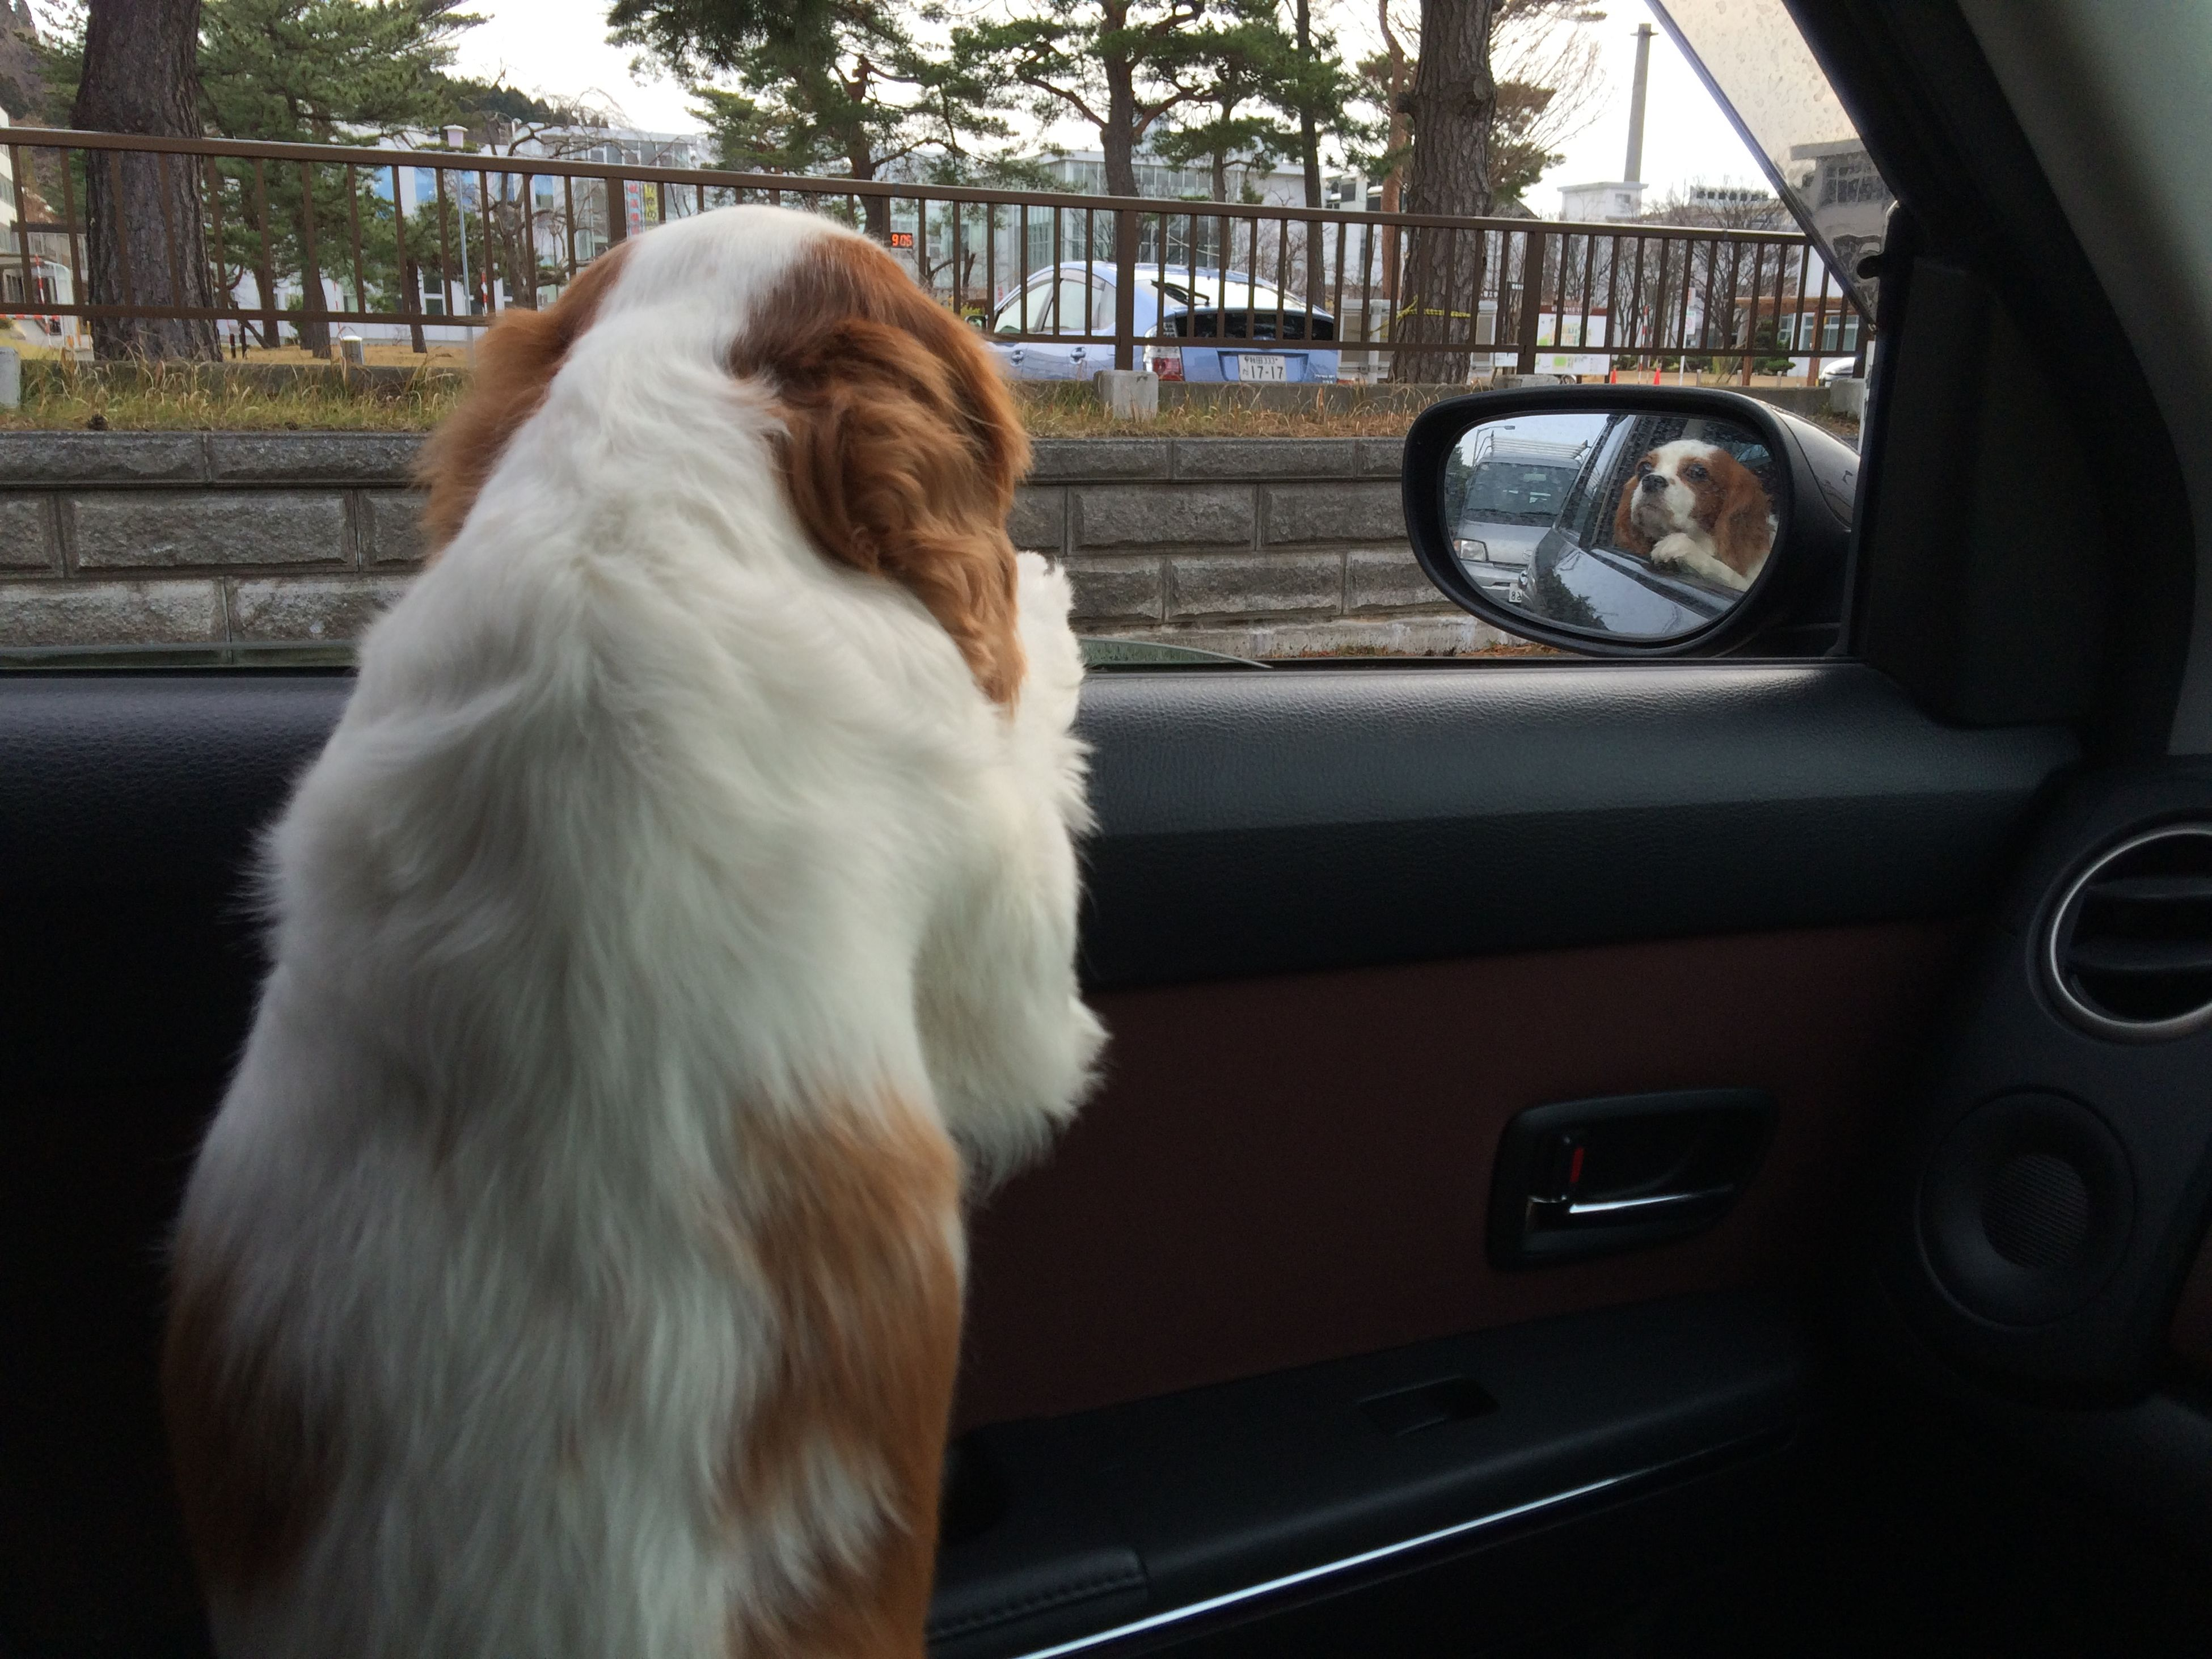 transportation, one animal, car, land vehicle, domestic animals, animal themes, mode of transport, mammal, pets, dog, street, road, part of, close-up, car interior, window, side view, on the move, animal head, glass - material